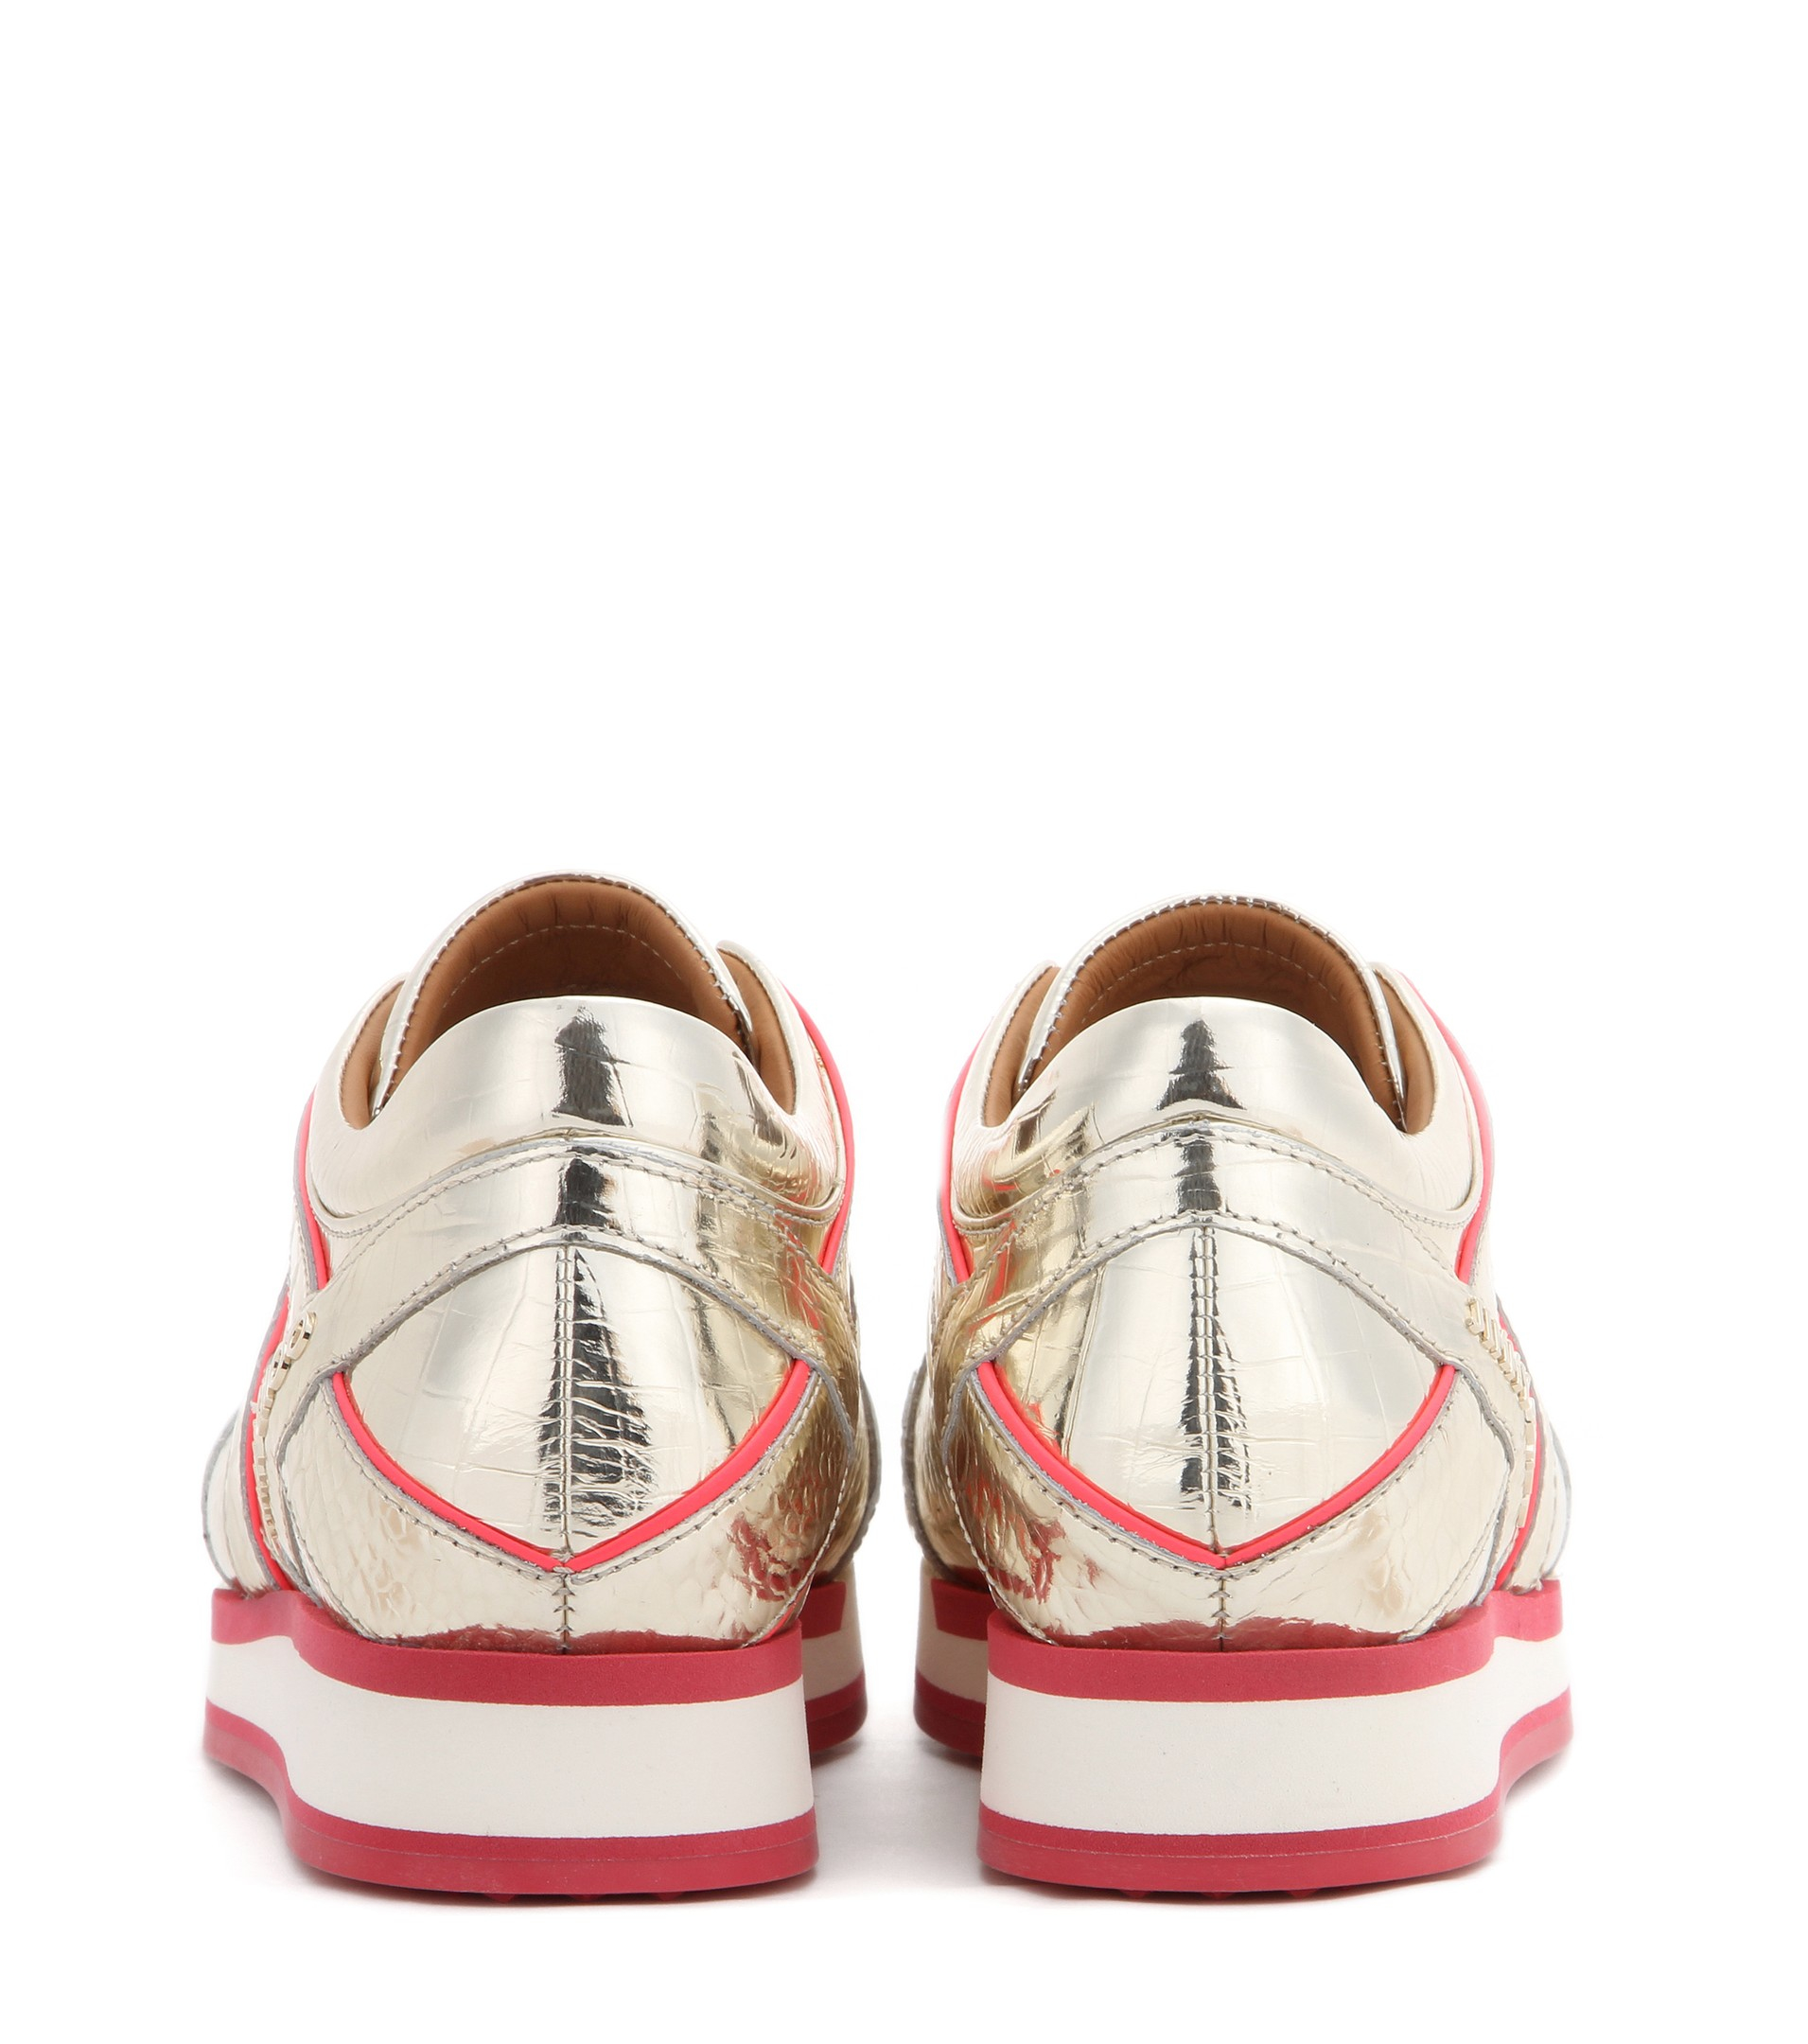 Miami leather sneakers Jimmy Choo London gBMXODIZr8